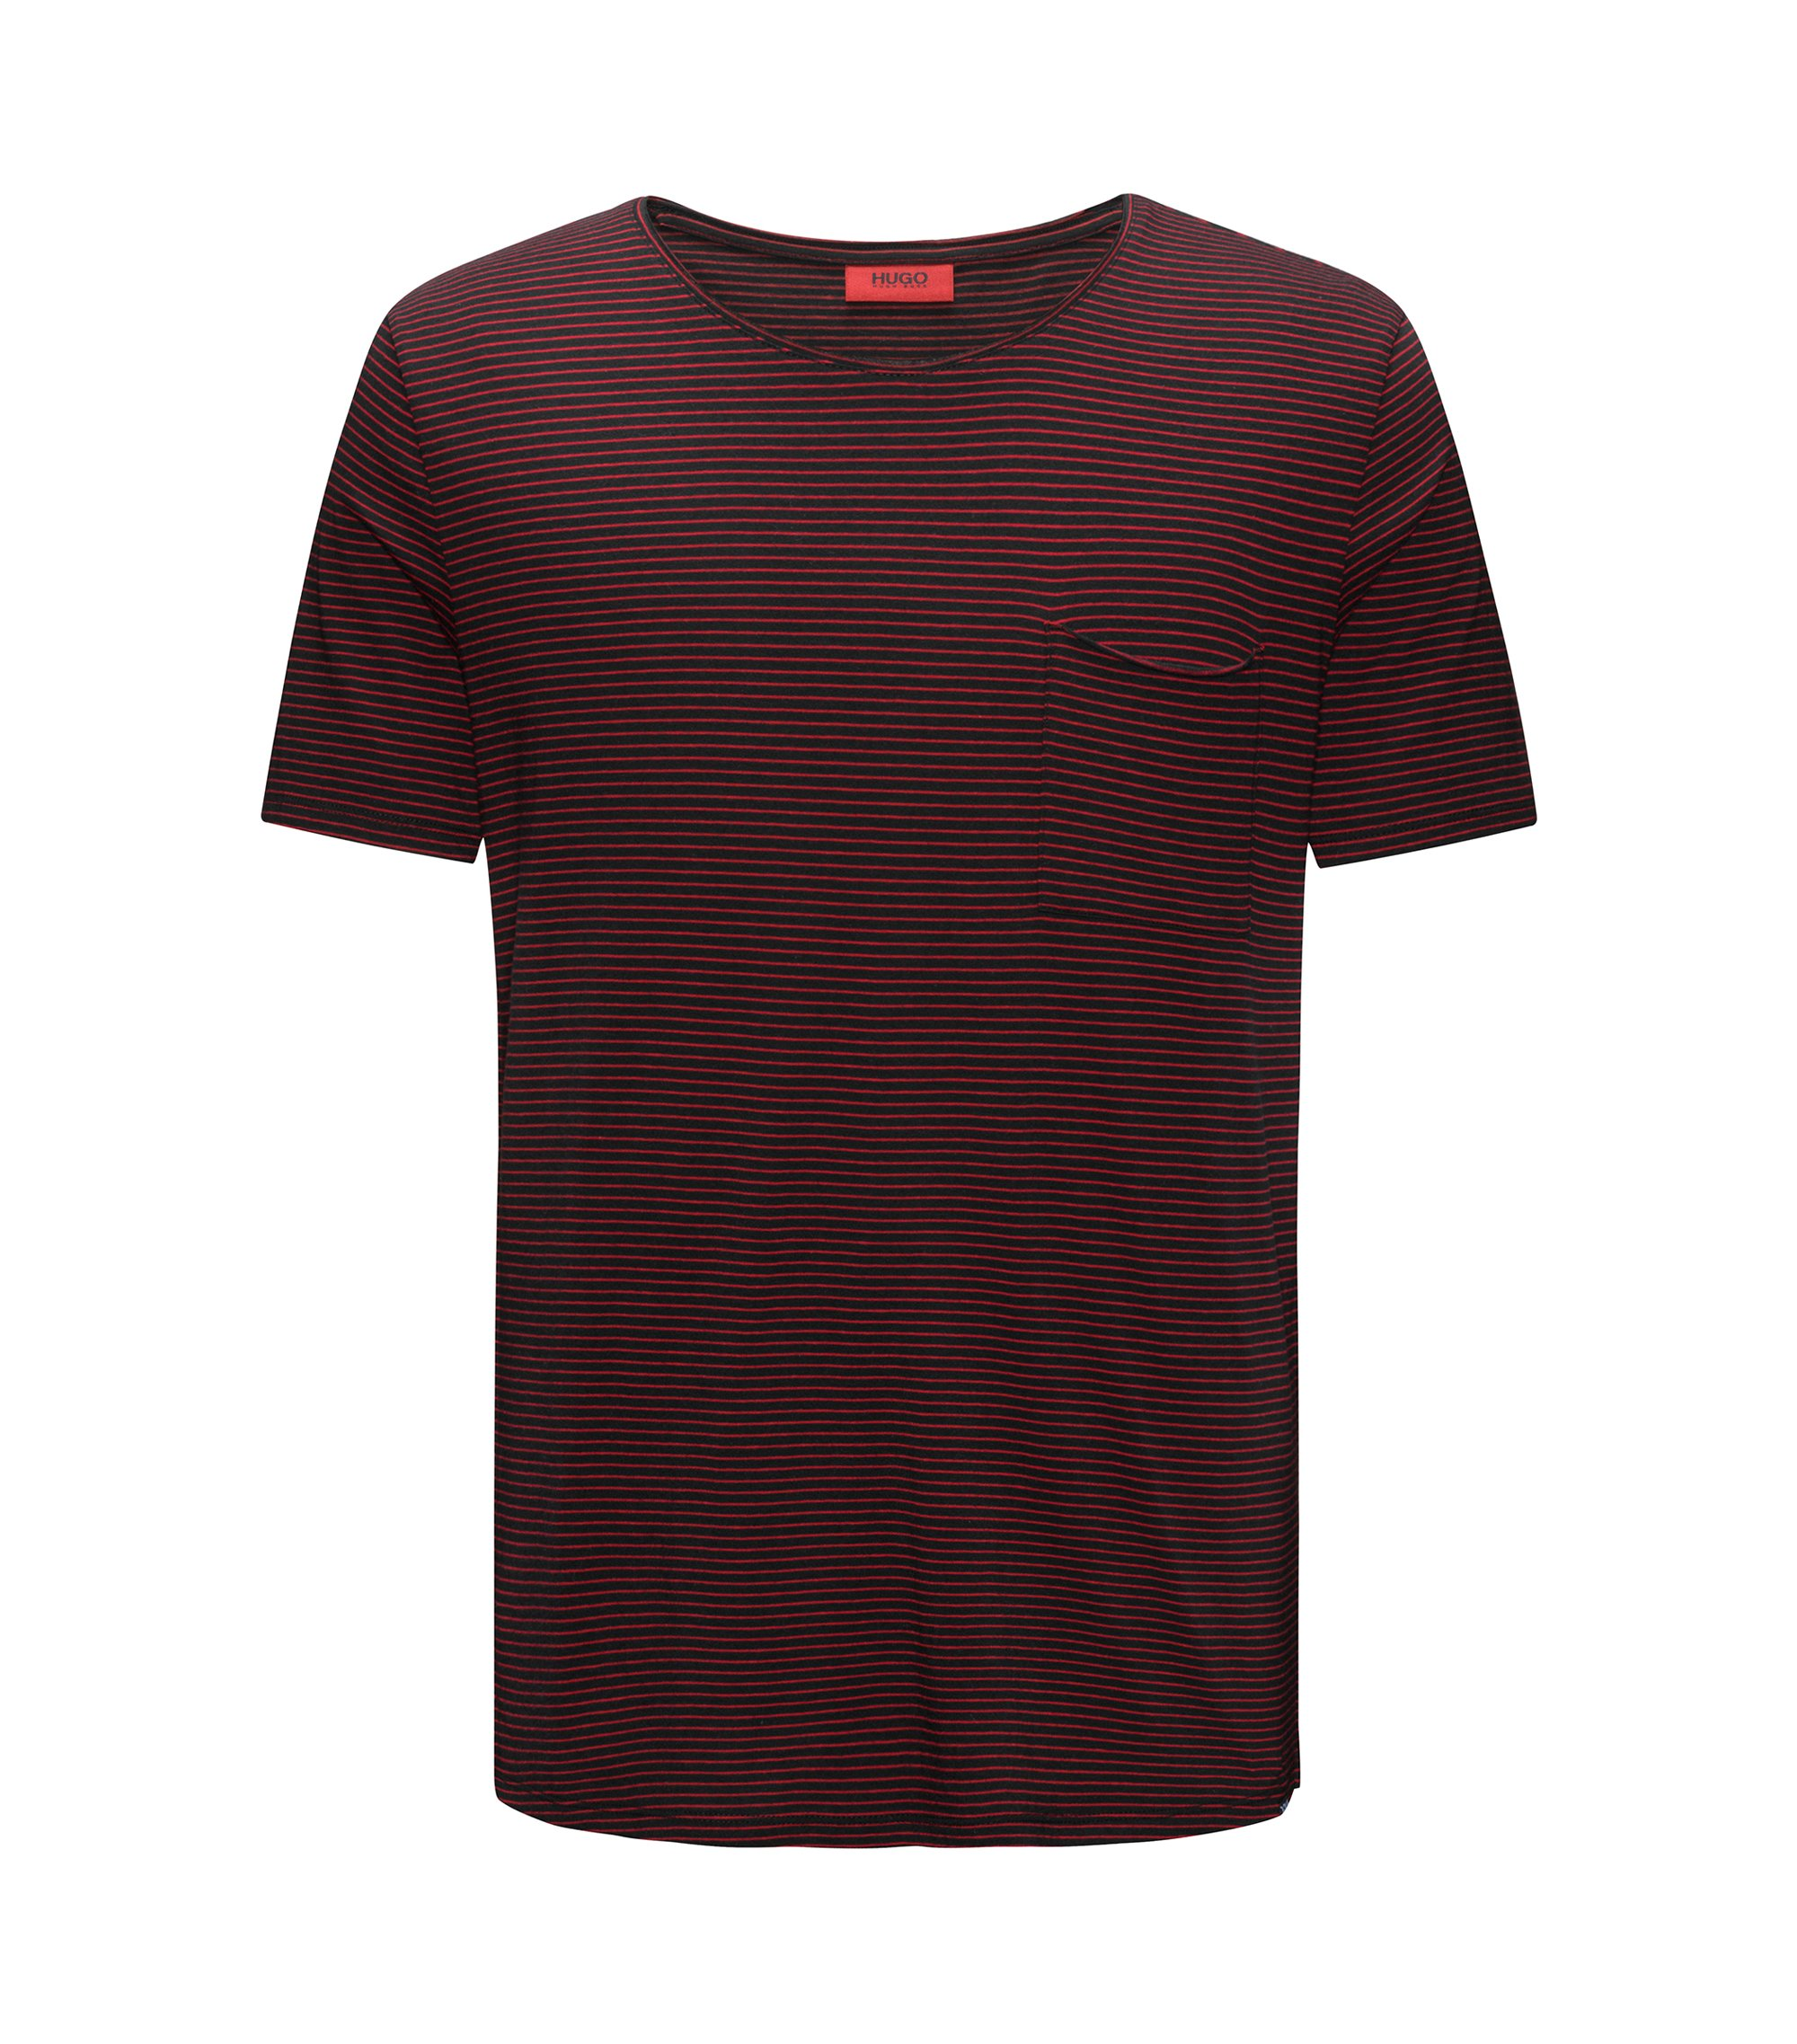 Striped cotton-blend T-shirt in a relaxed fit, Black